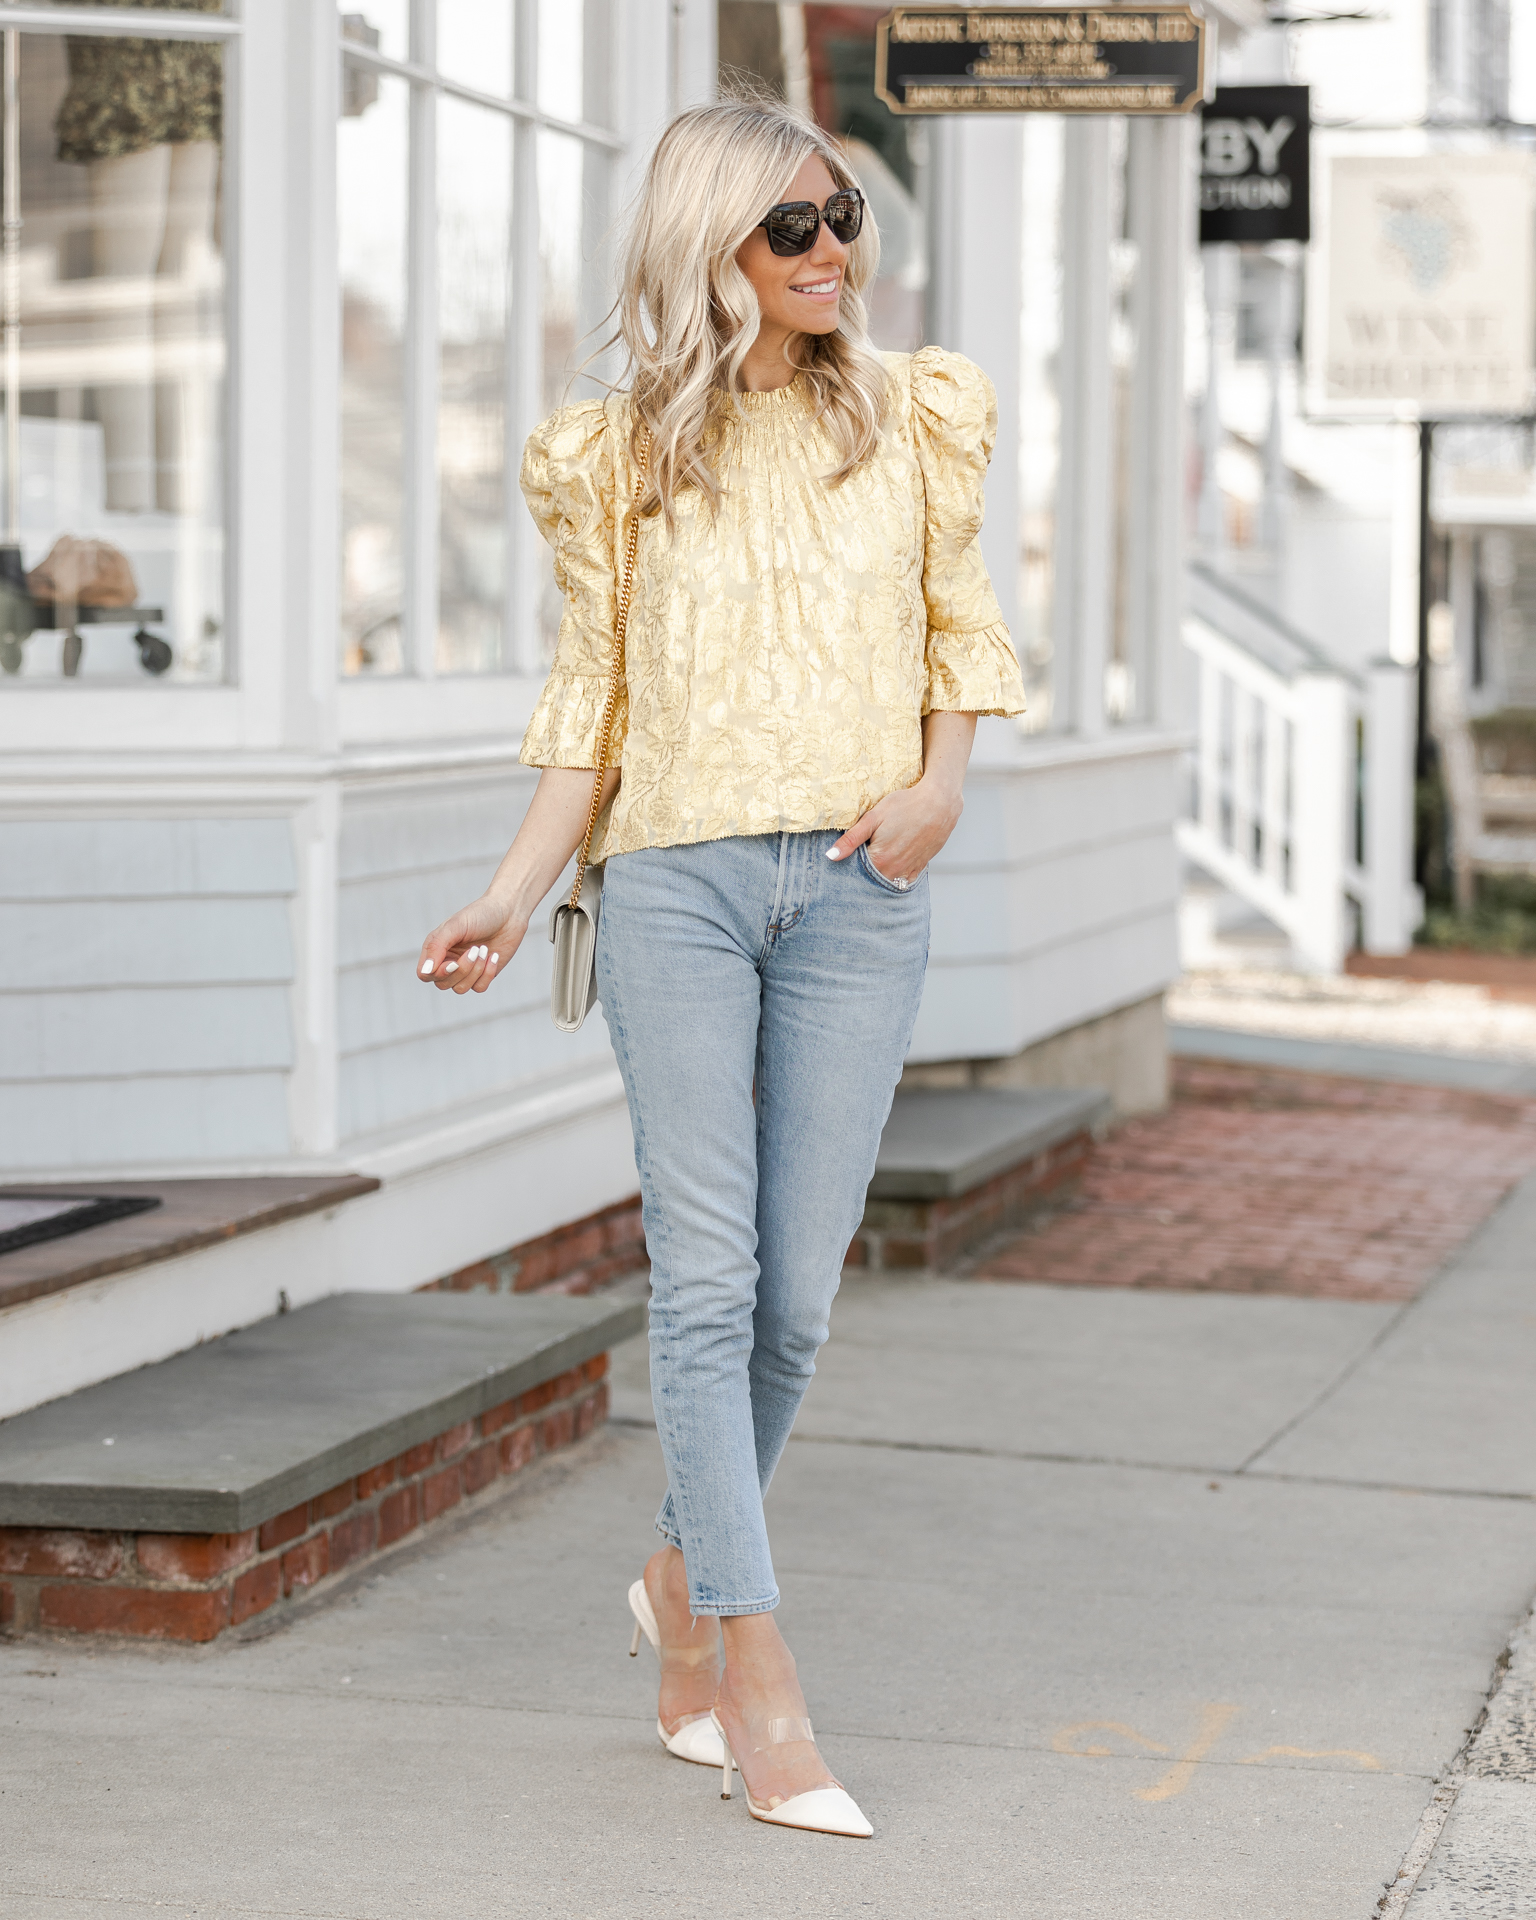 saylor-metallic-top-for-spring-the-glamorous-gal